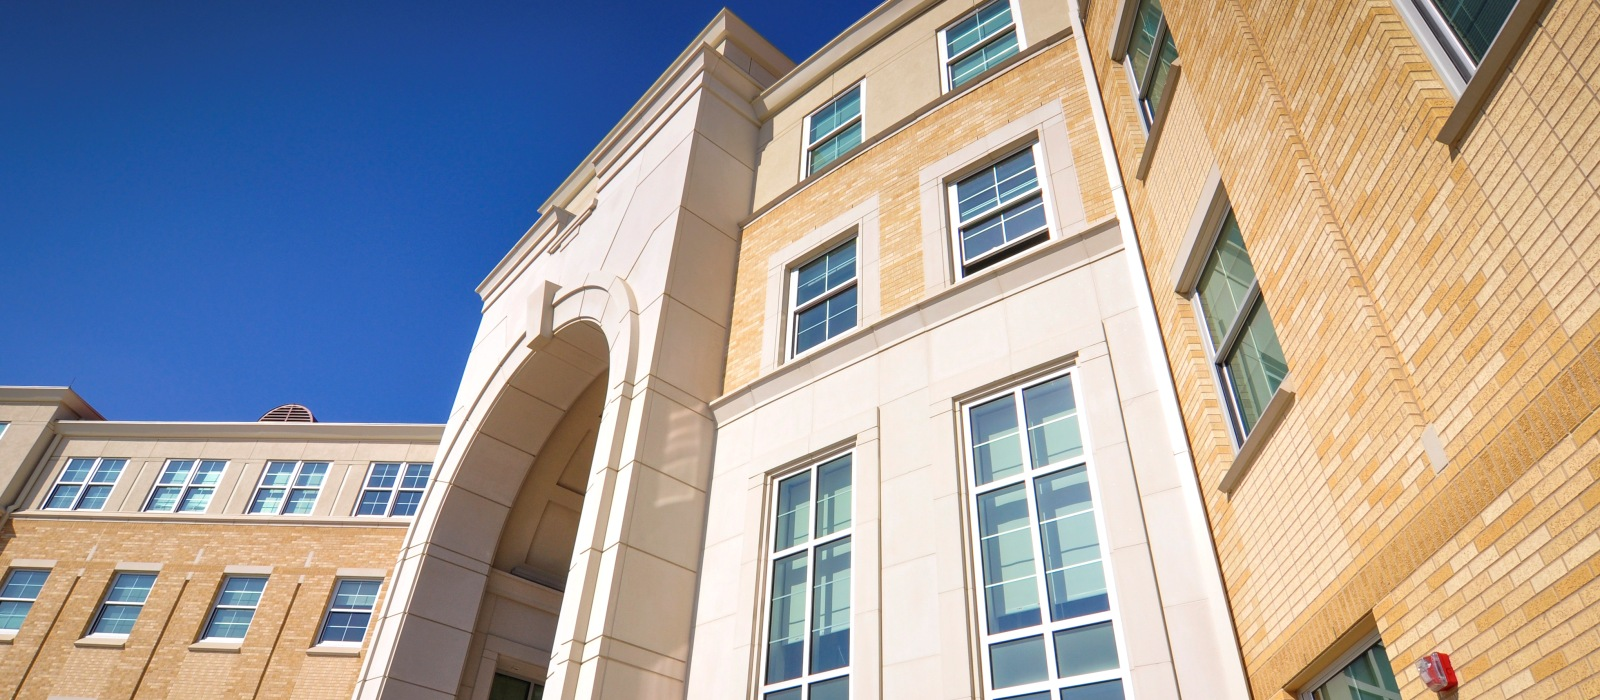 Precast Stone Panels : Architectural stone cladding using